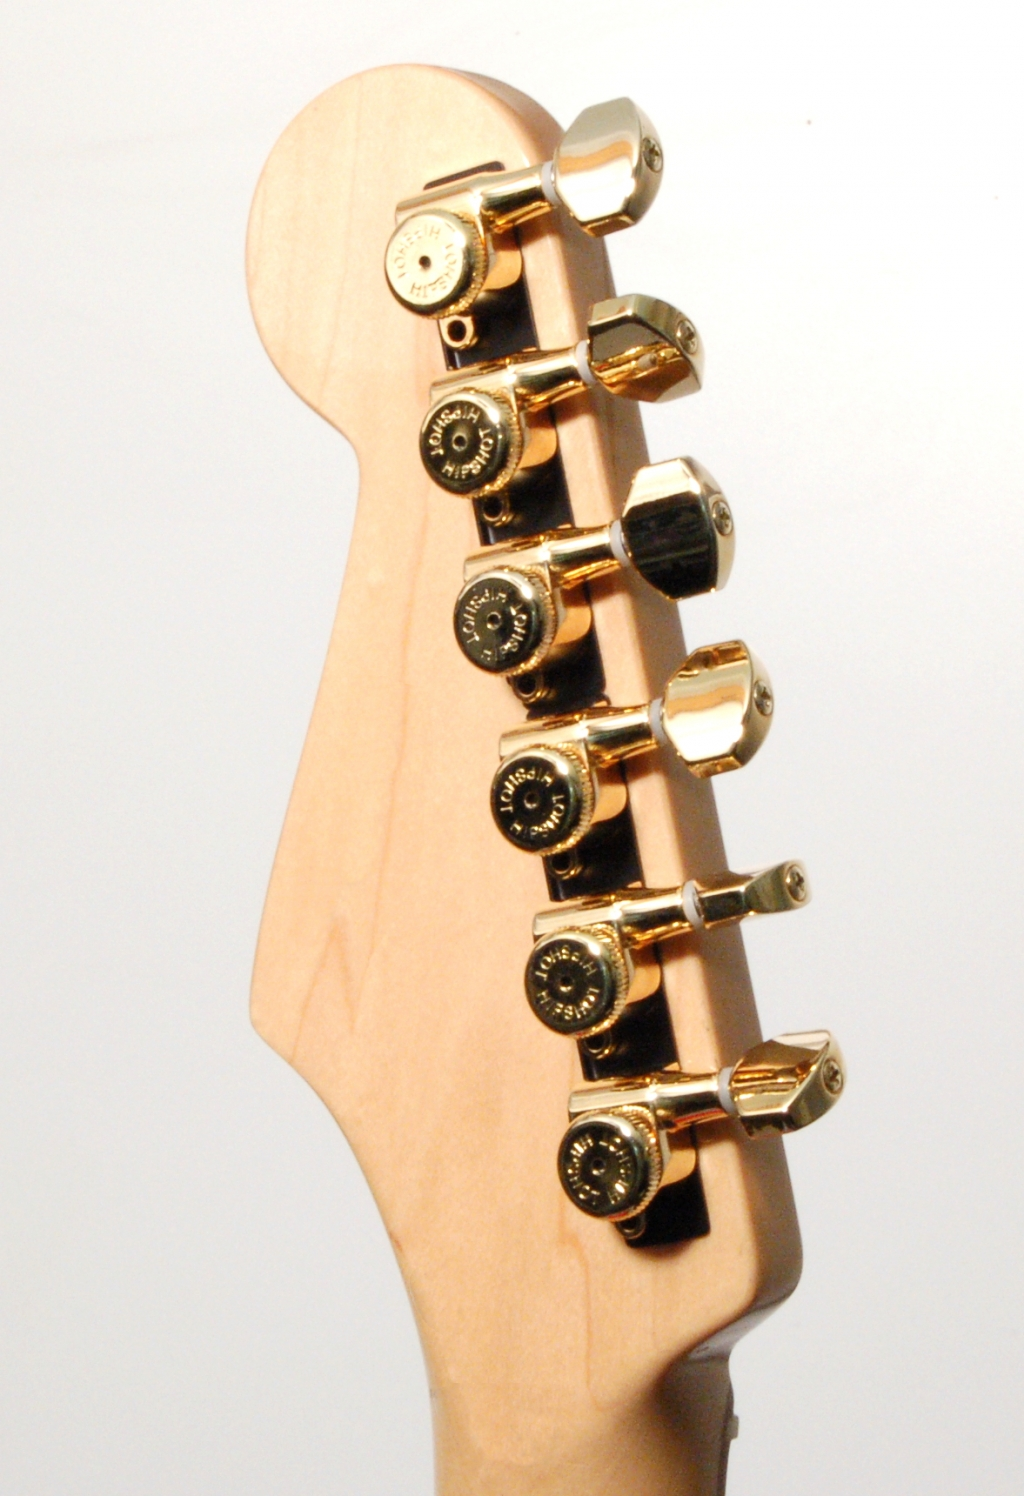 hipshot gold 6 inline grip lock non staggered closed guitar tuners w ump kit 608938453129 ebay. Black Bedroom Furniture Sets. Home Design Ideas